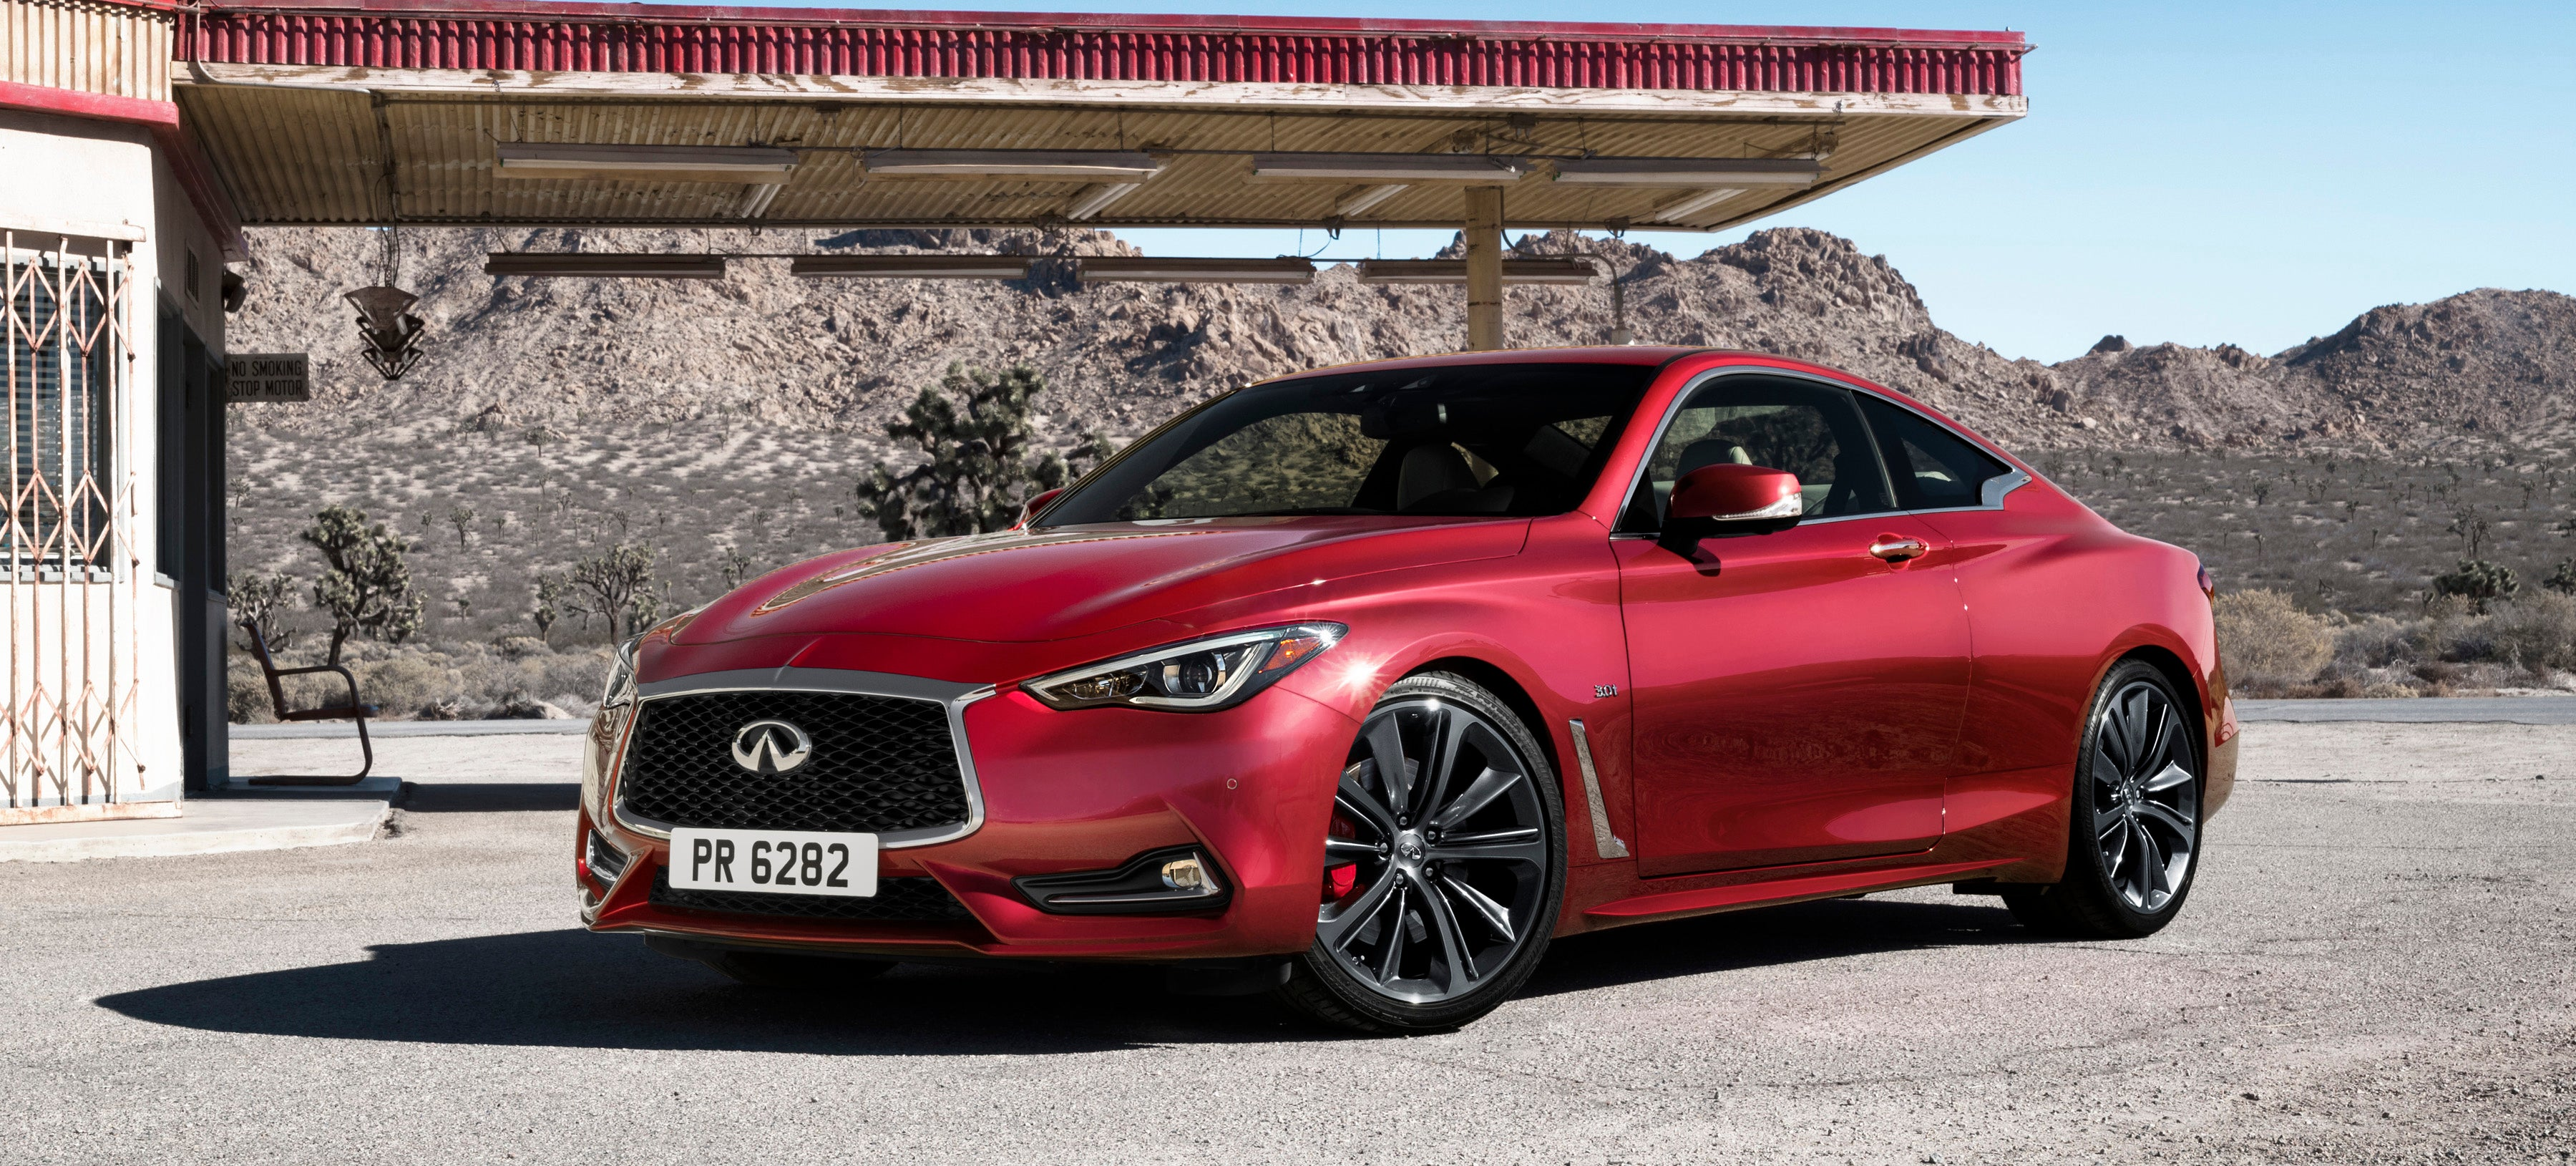 the 2017 infiniti q60 is the 400 hp twin turbo new coupe hotness Freightliner Columbia Wiring Schematic q60 infiniti wiring diagram Gem Wiring Diagrams Vacuum Diagram for 1999 Infiniti I30 FX35 Infiniti Wiring-Diagram